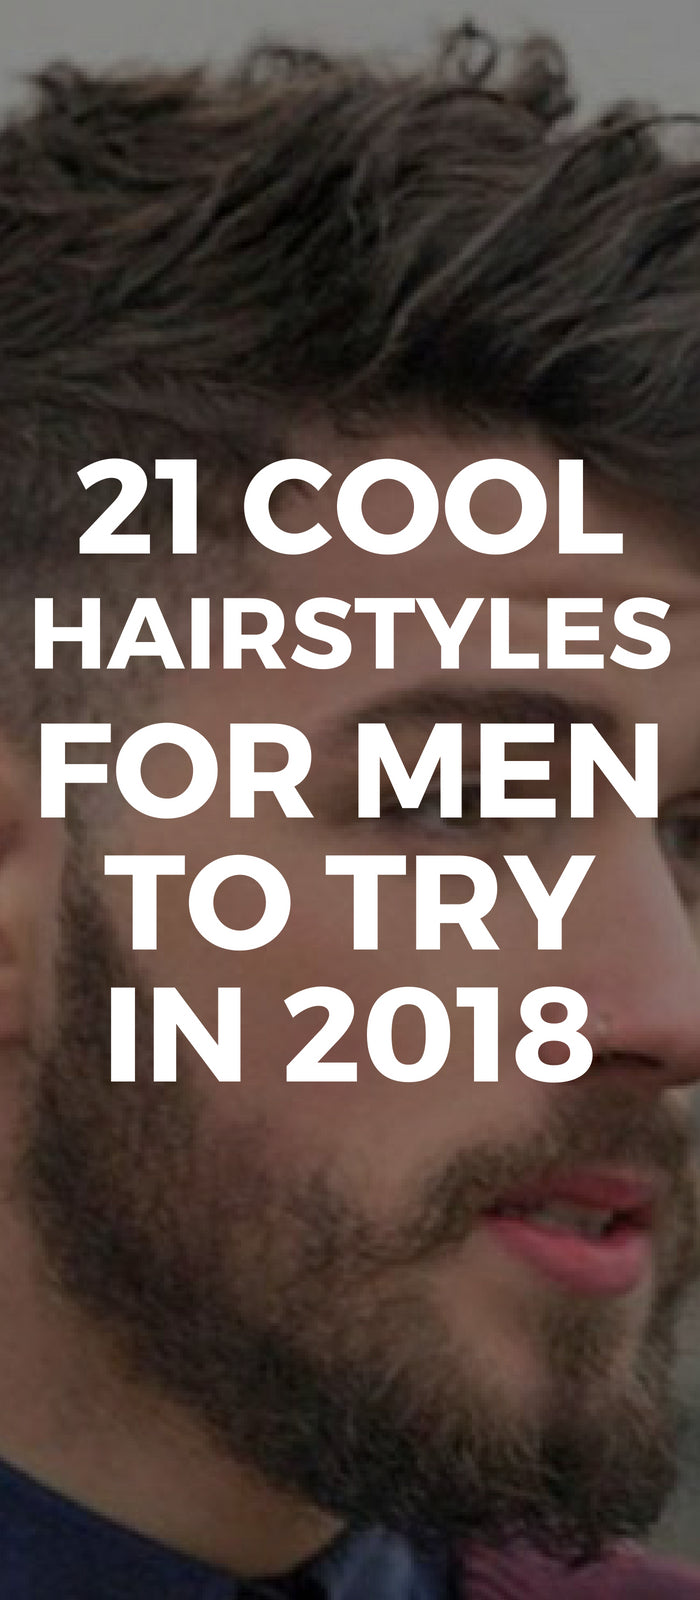 21 Cool Hairstyles For Men